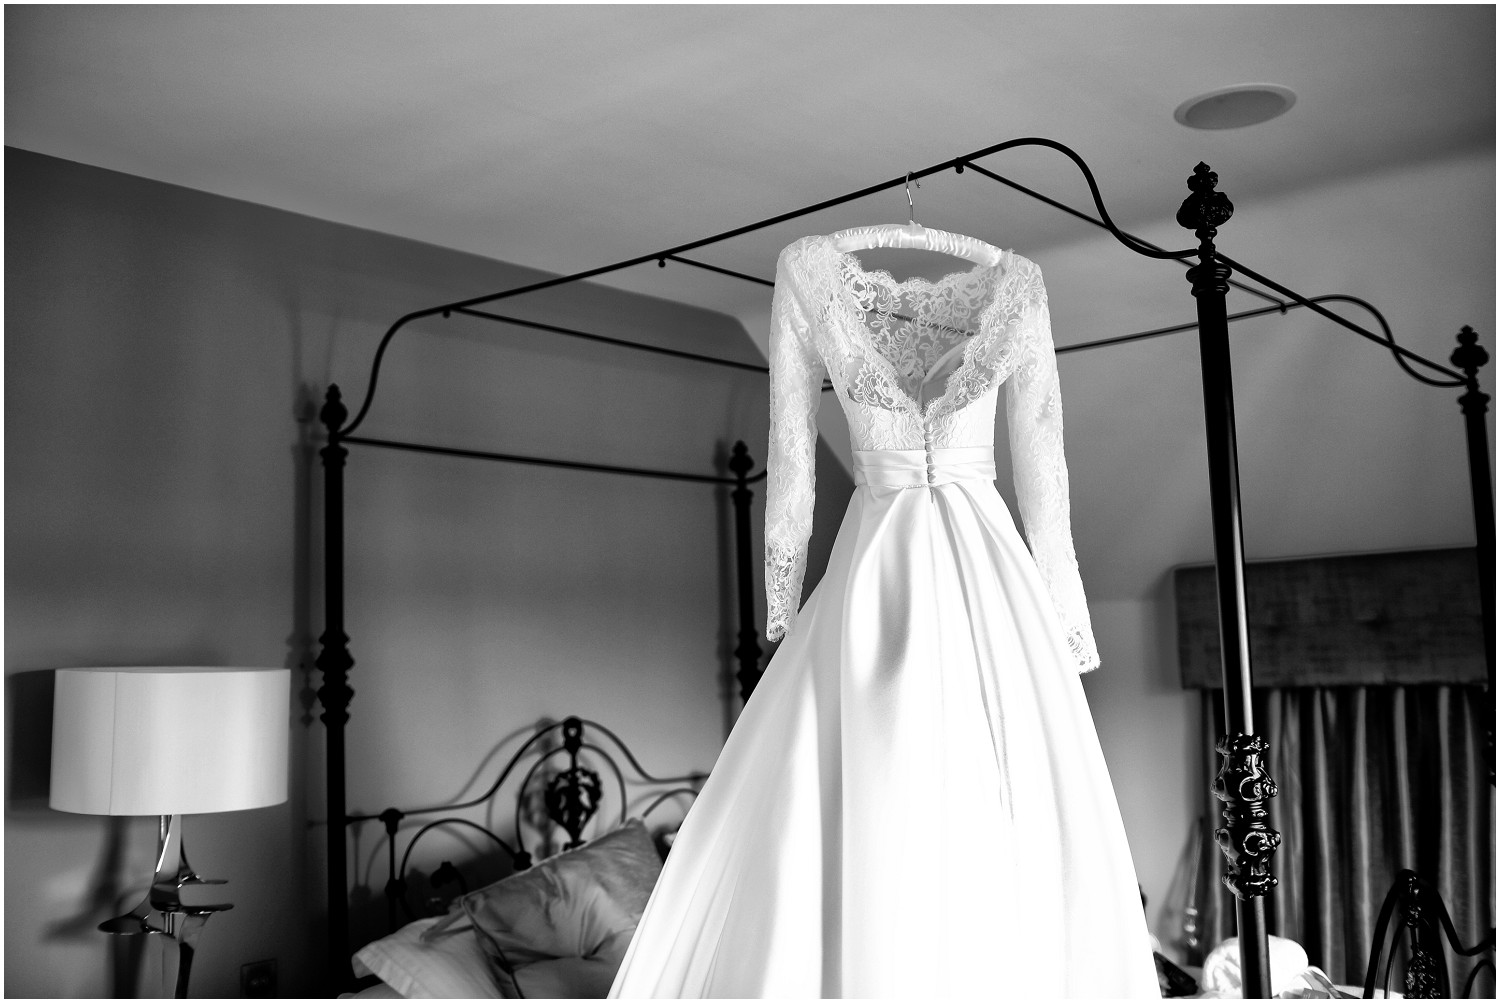 wedding dress hanging from bed